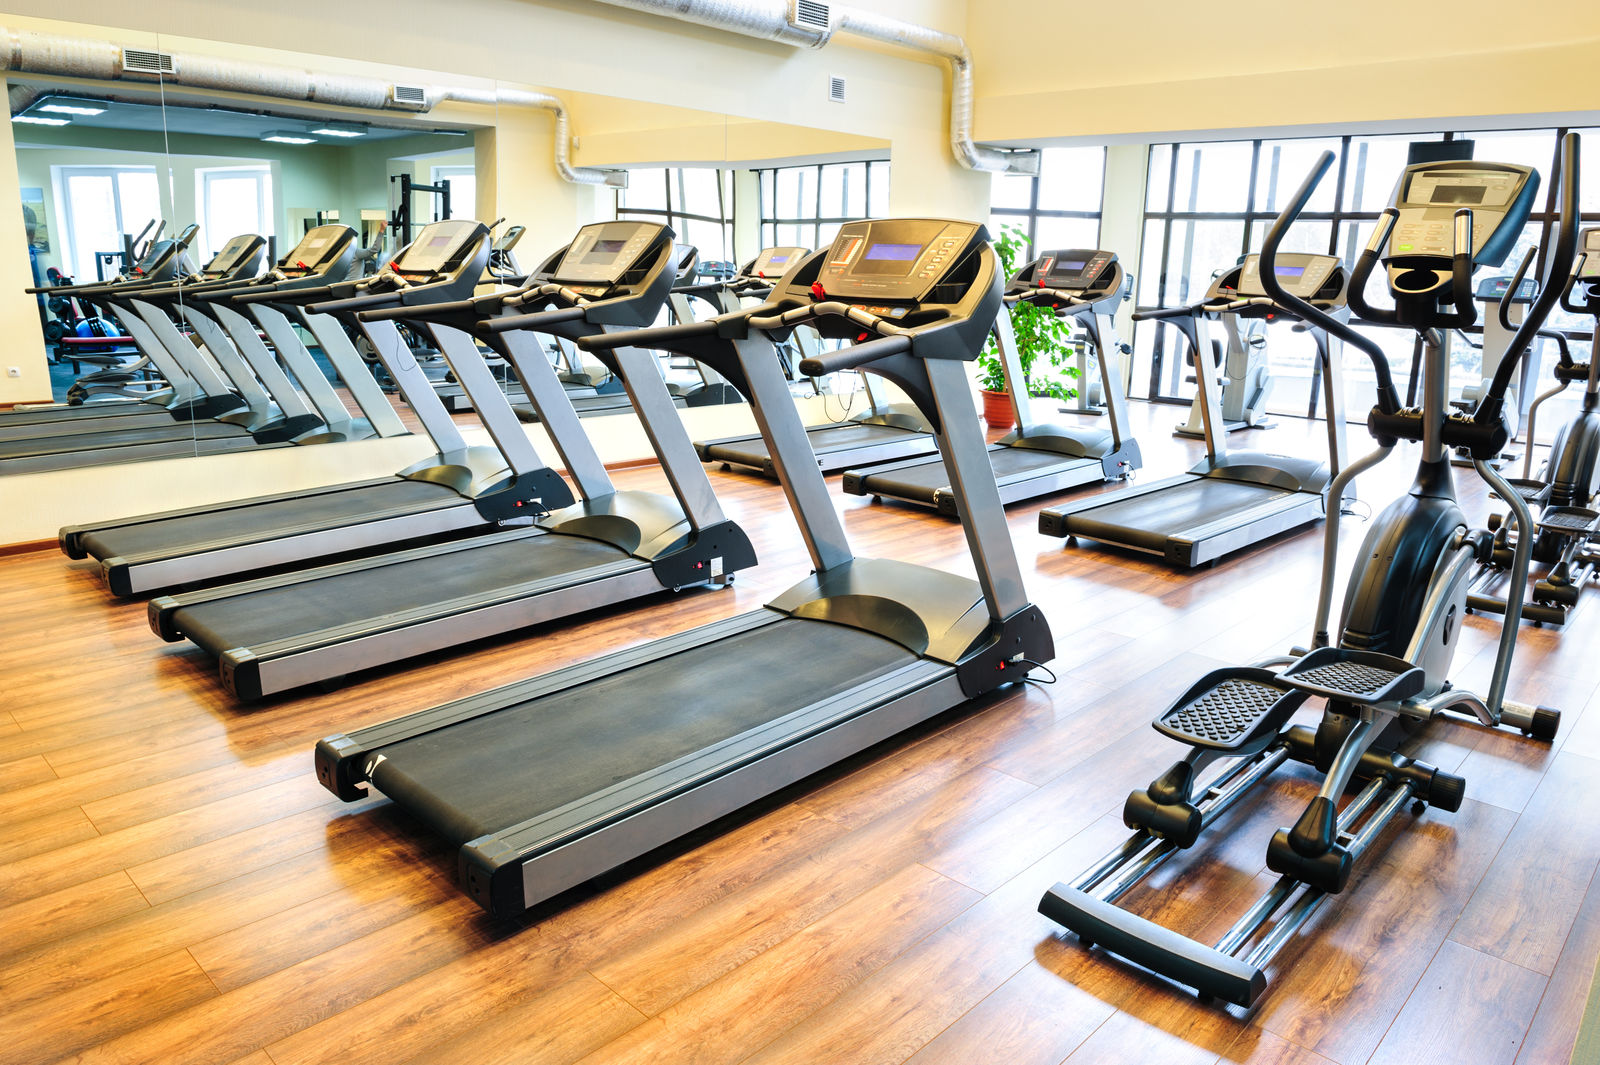 The Run Experience's Treadmill Workout for Beginners